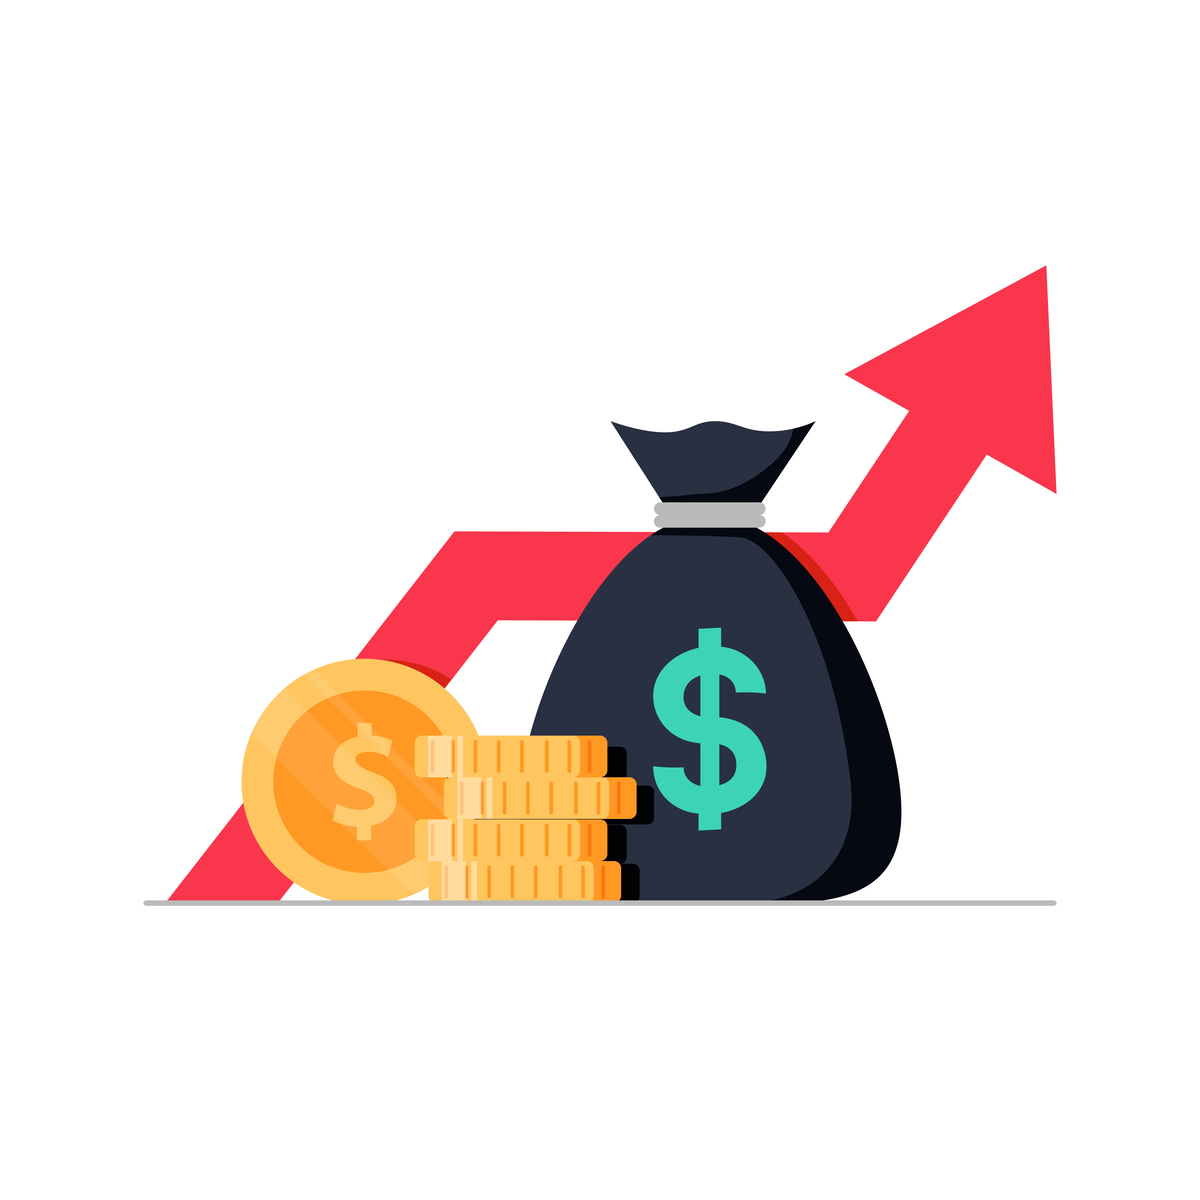 Illustration of a bag of money in front of an upward-facing arrow.